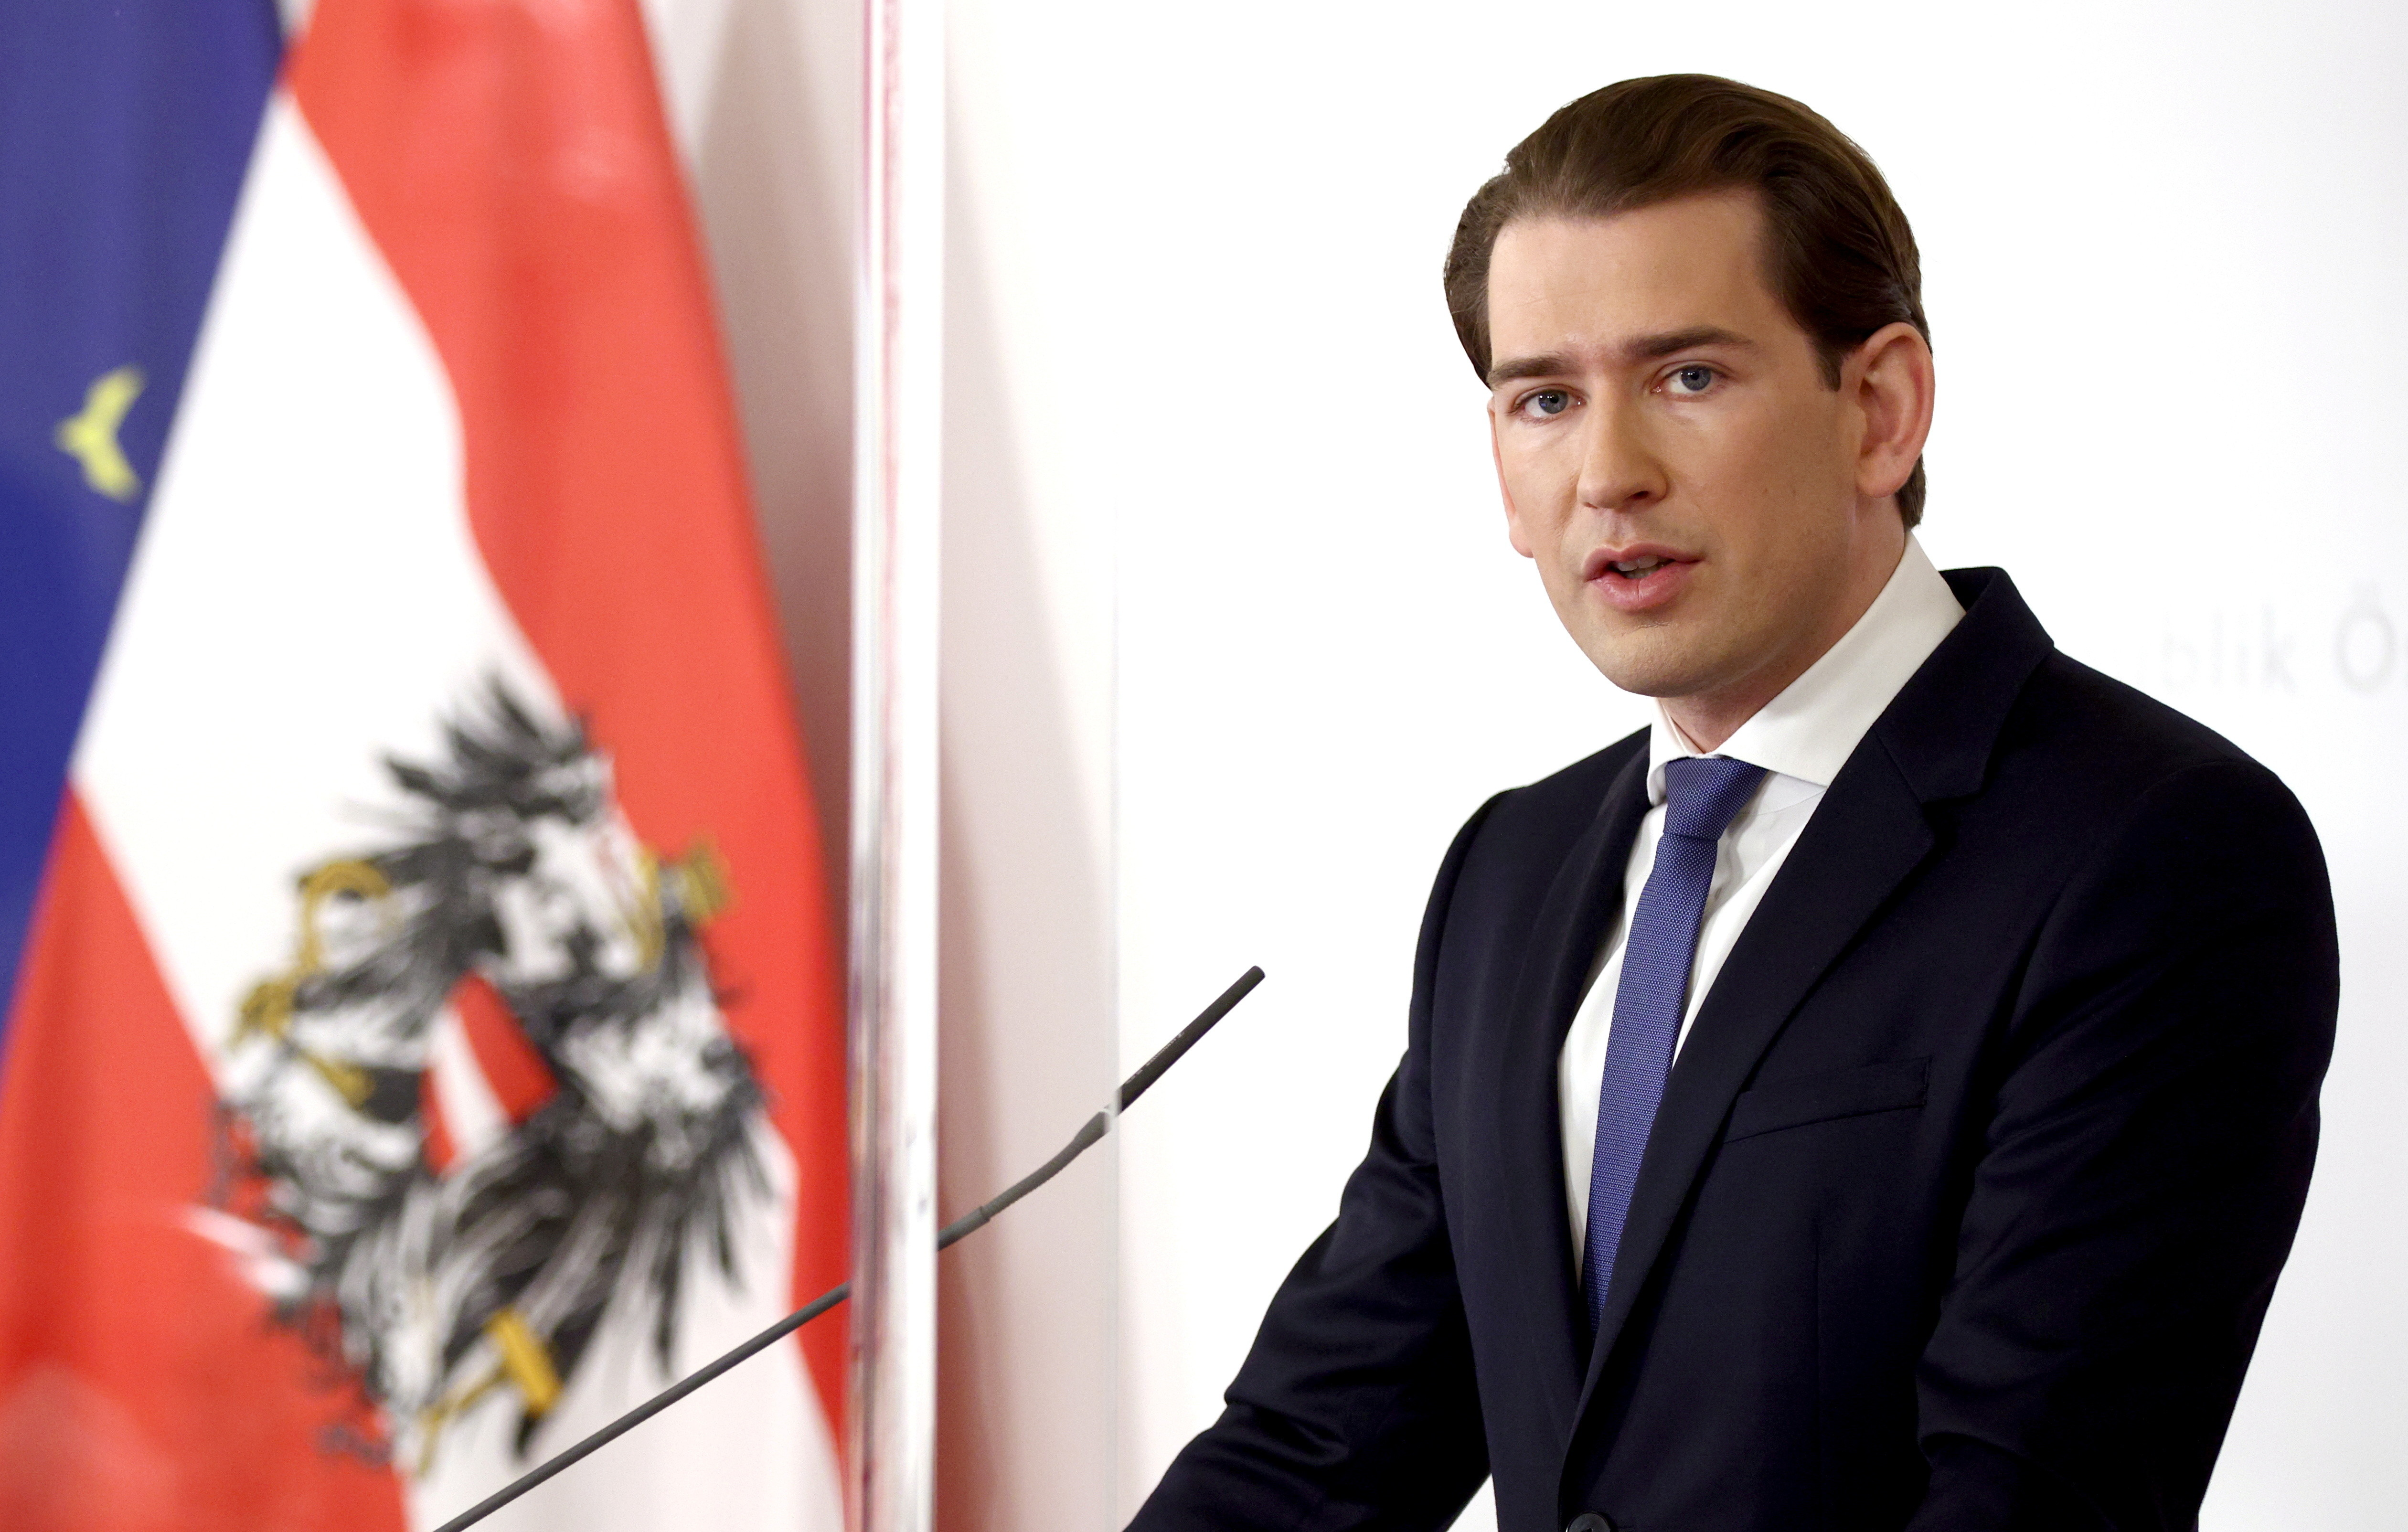 Austria's Chancellor Sebastian Kurz speaks during a news conference as the spread of the coronavirus disease (COVID-19) continues, in Vienna, Austria November 14, 2020.